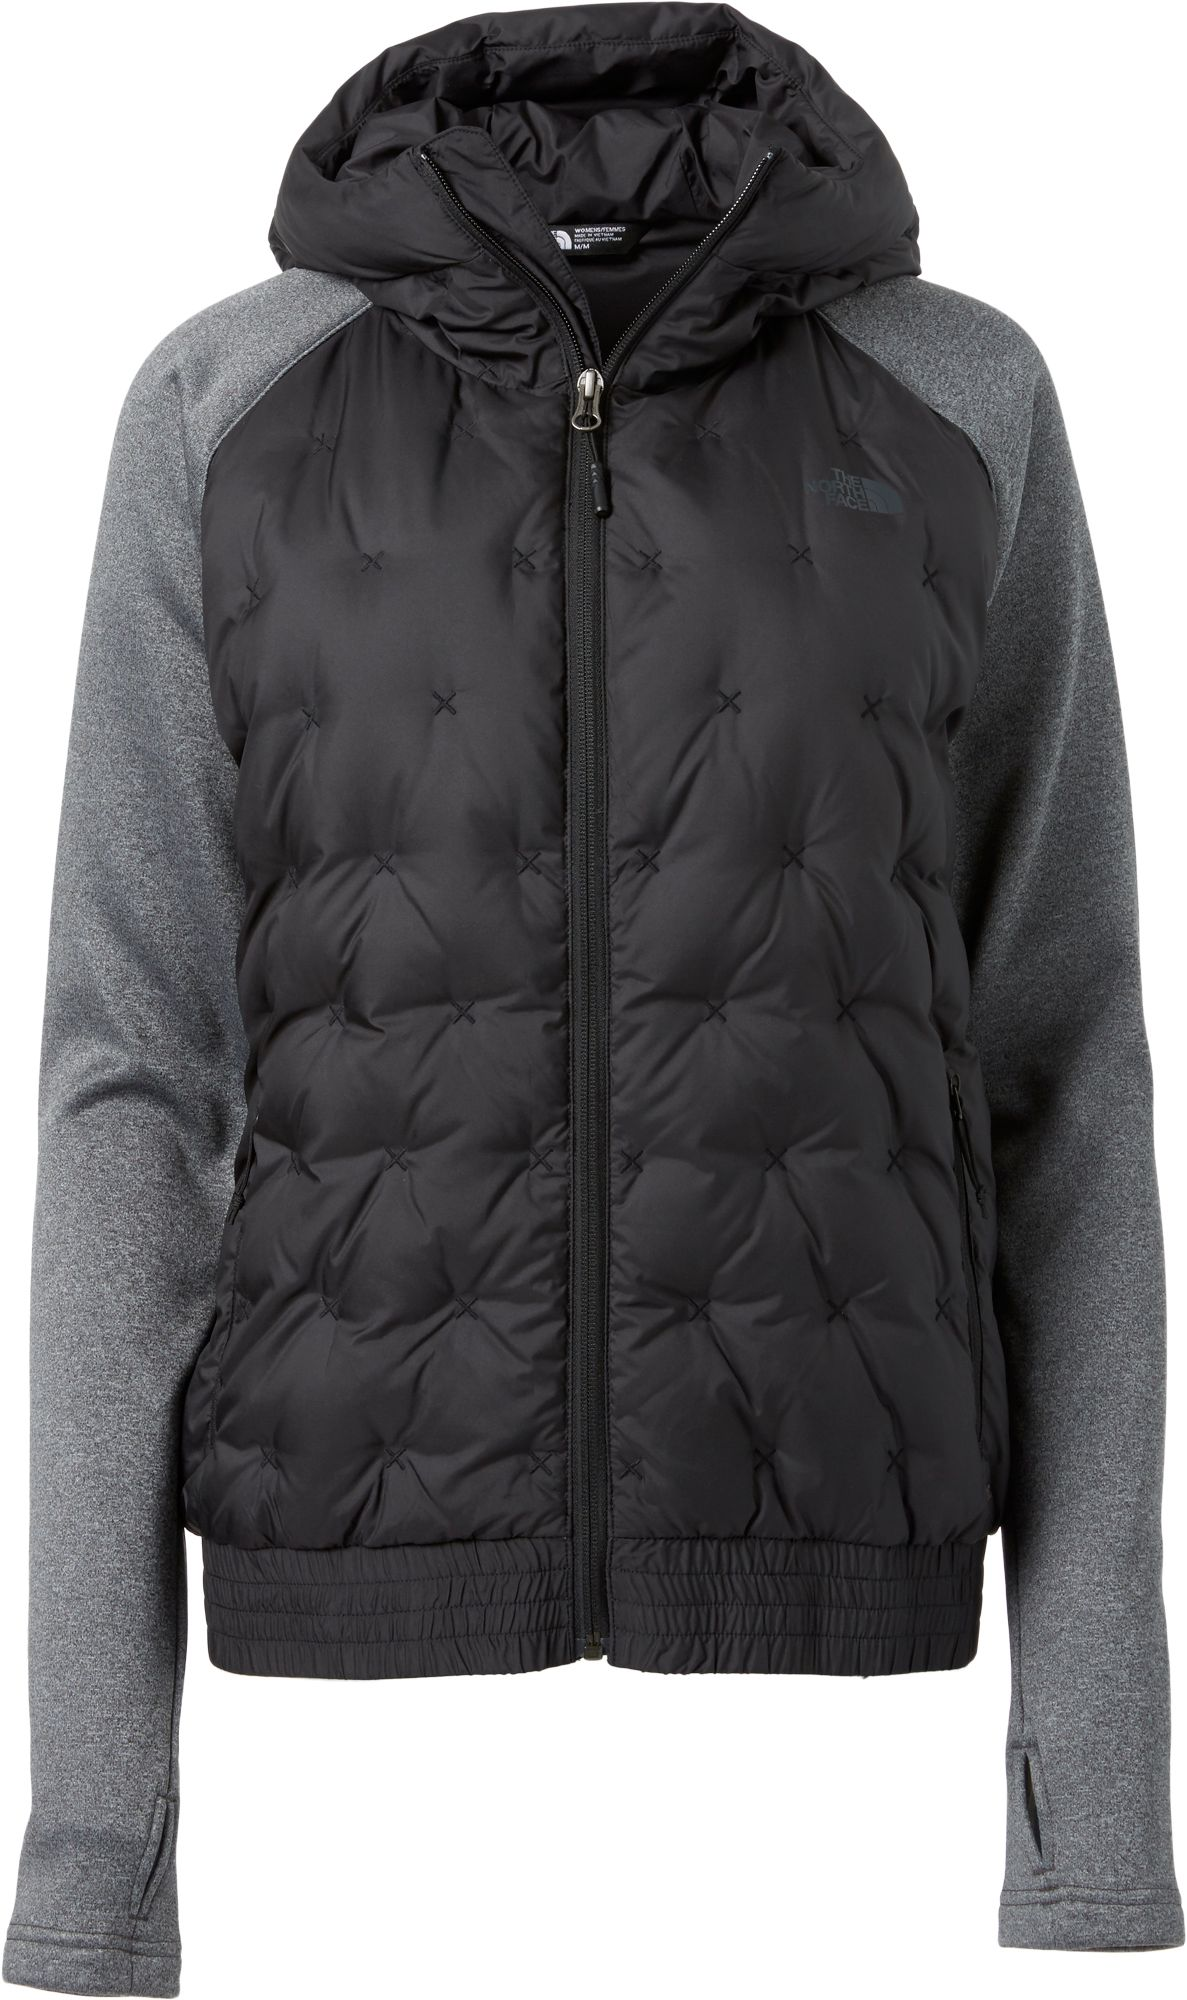 The North Face Women's Mash-Up Bomber Down Jacket - Past Season ...